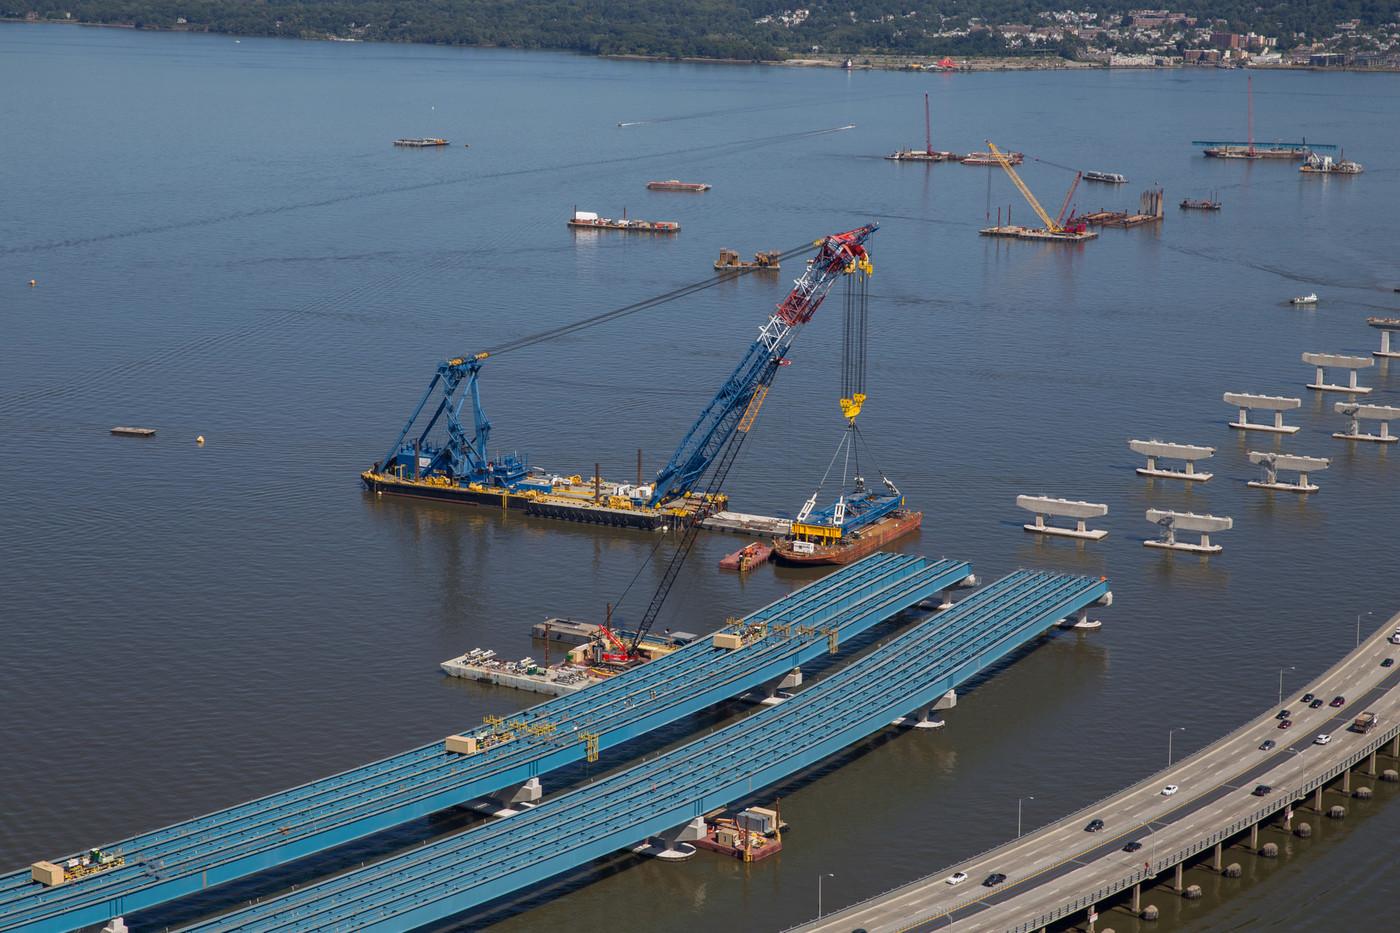 The I Lift NY super crane continues to install enormous girder assemblies weighing up to 1,100 tons.